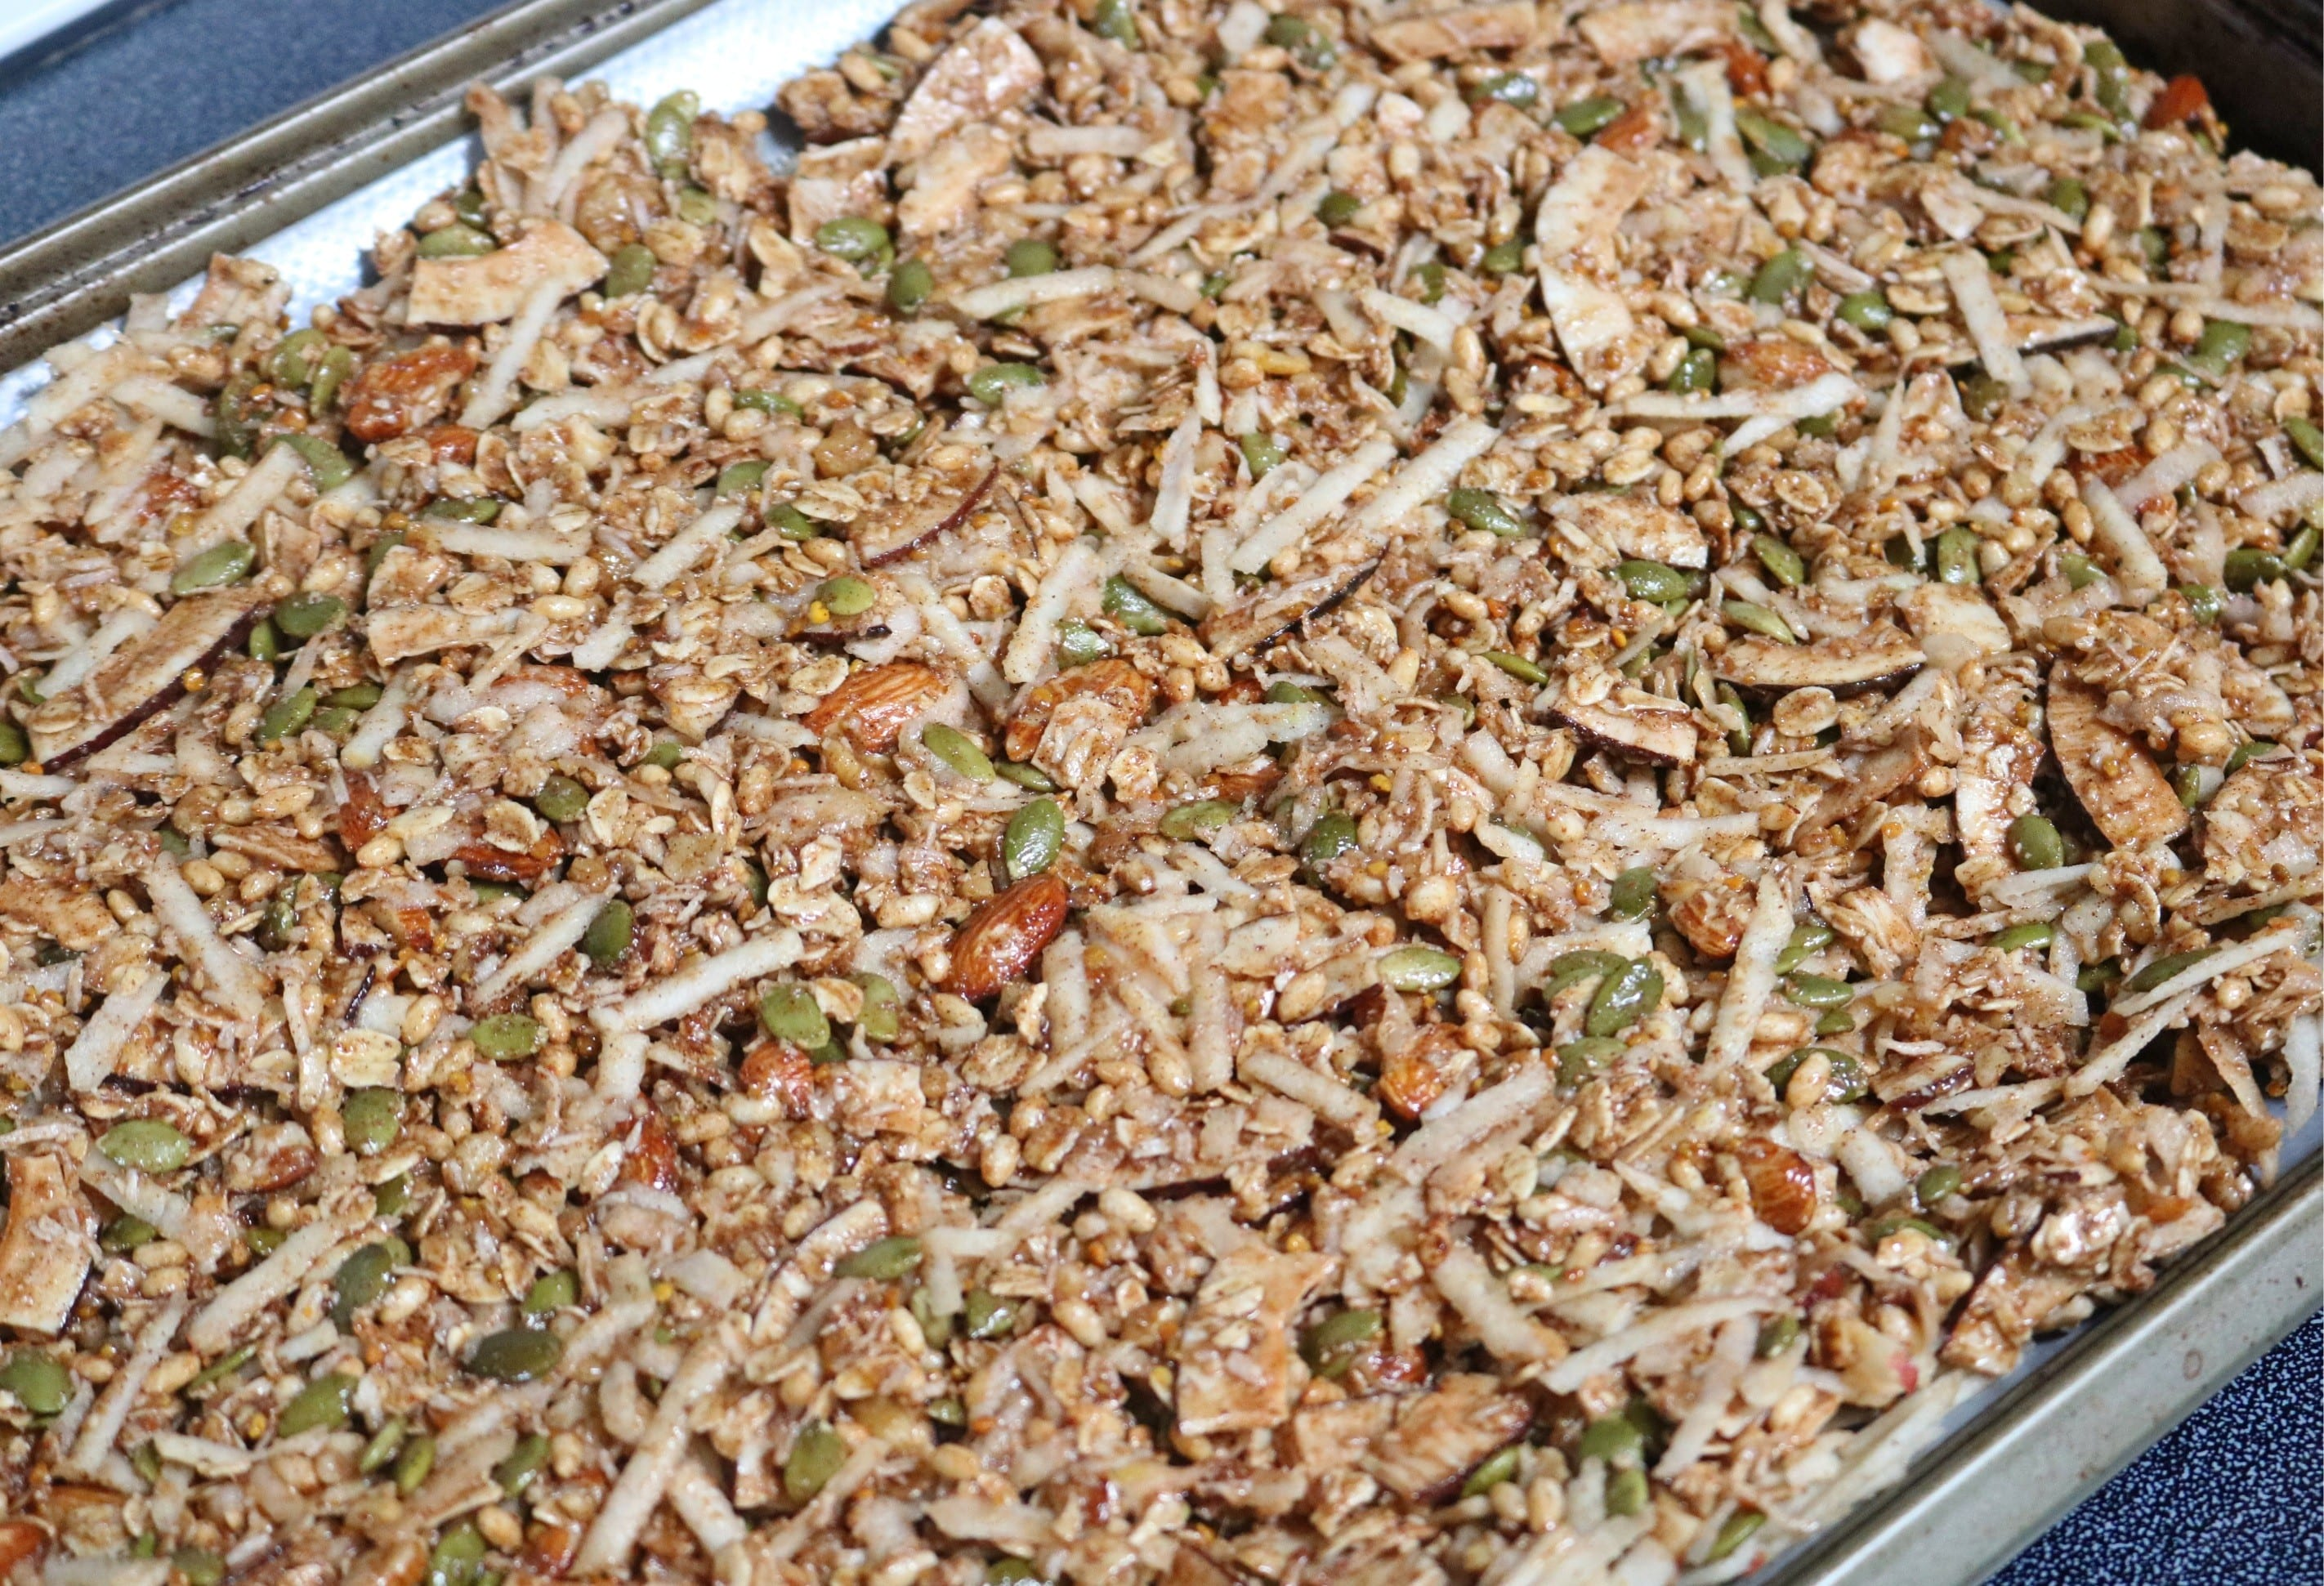 Apple pie granola on a baking tray lined with parchment paper